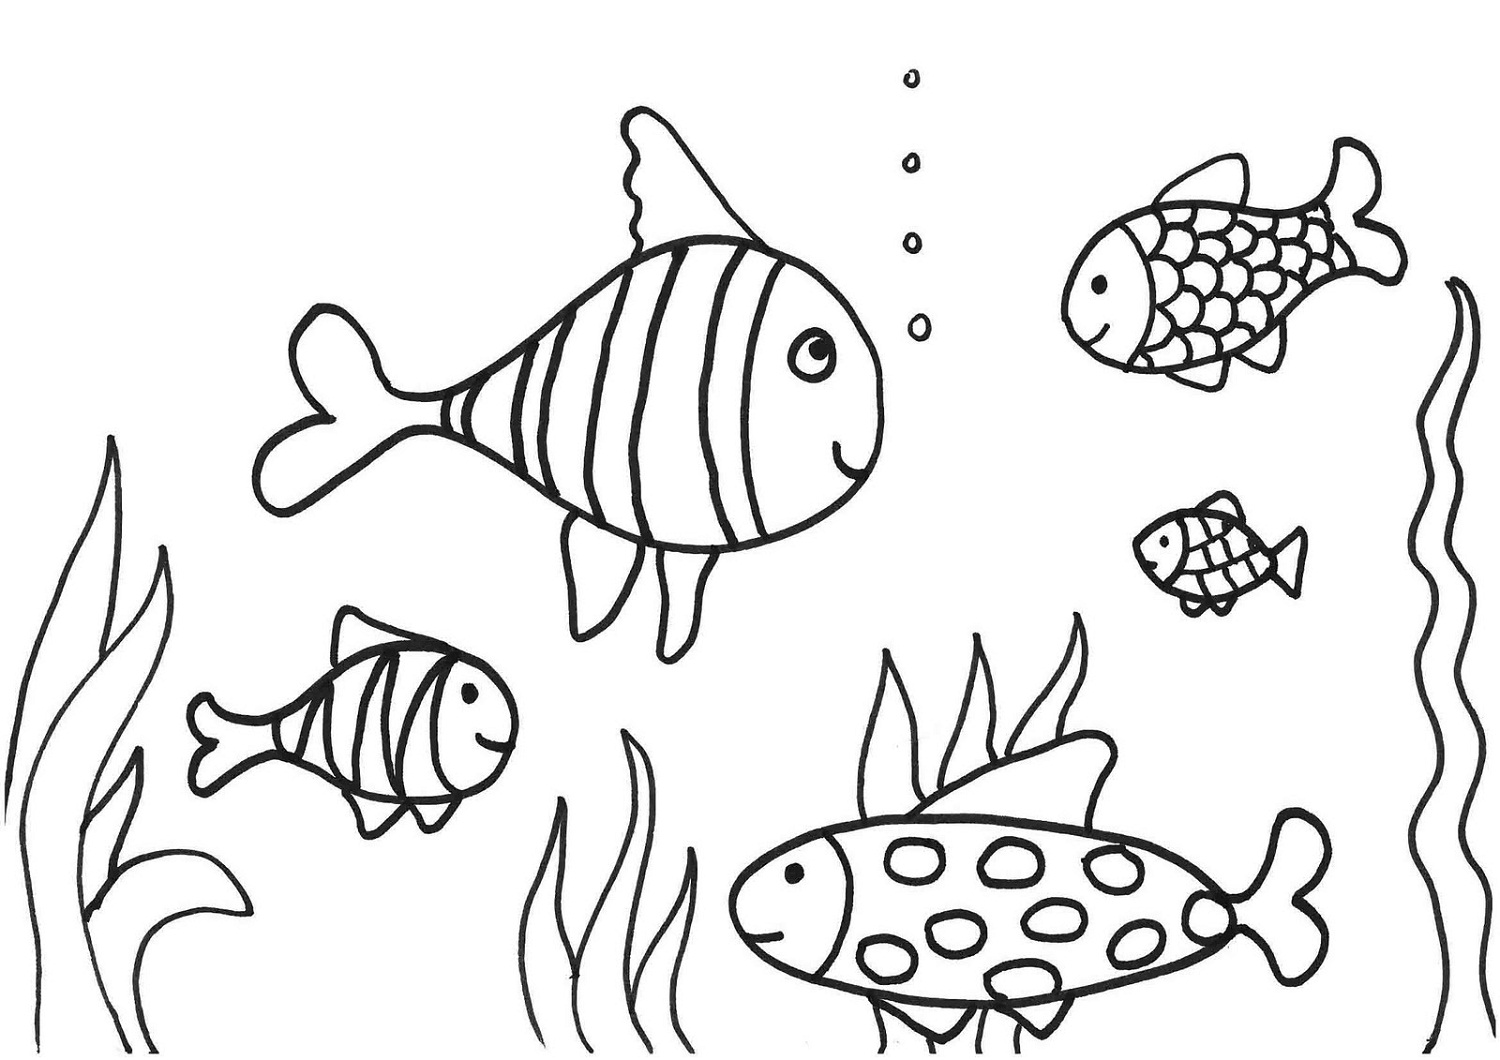 1500x1060 Extraordinary Barracuda Fish Coloring Page At Fishing Coloring